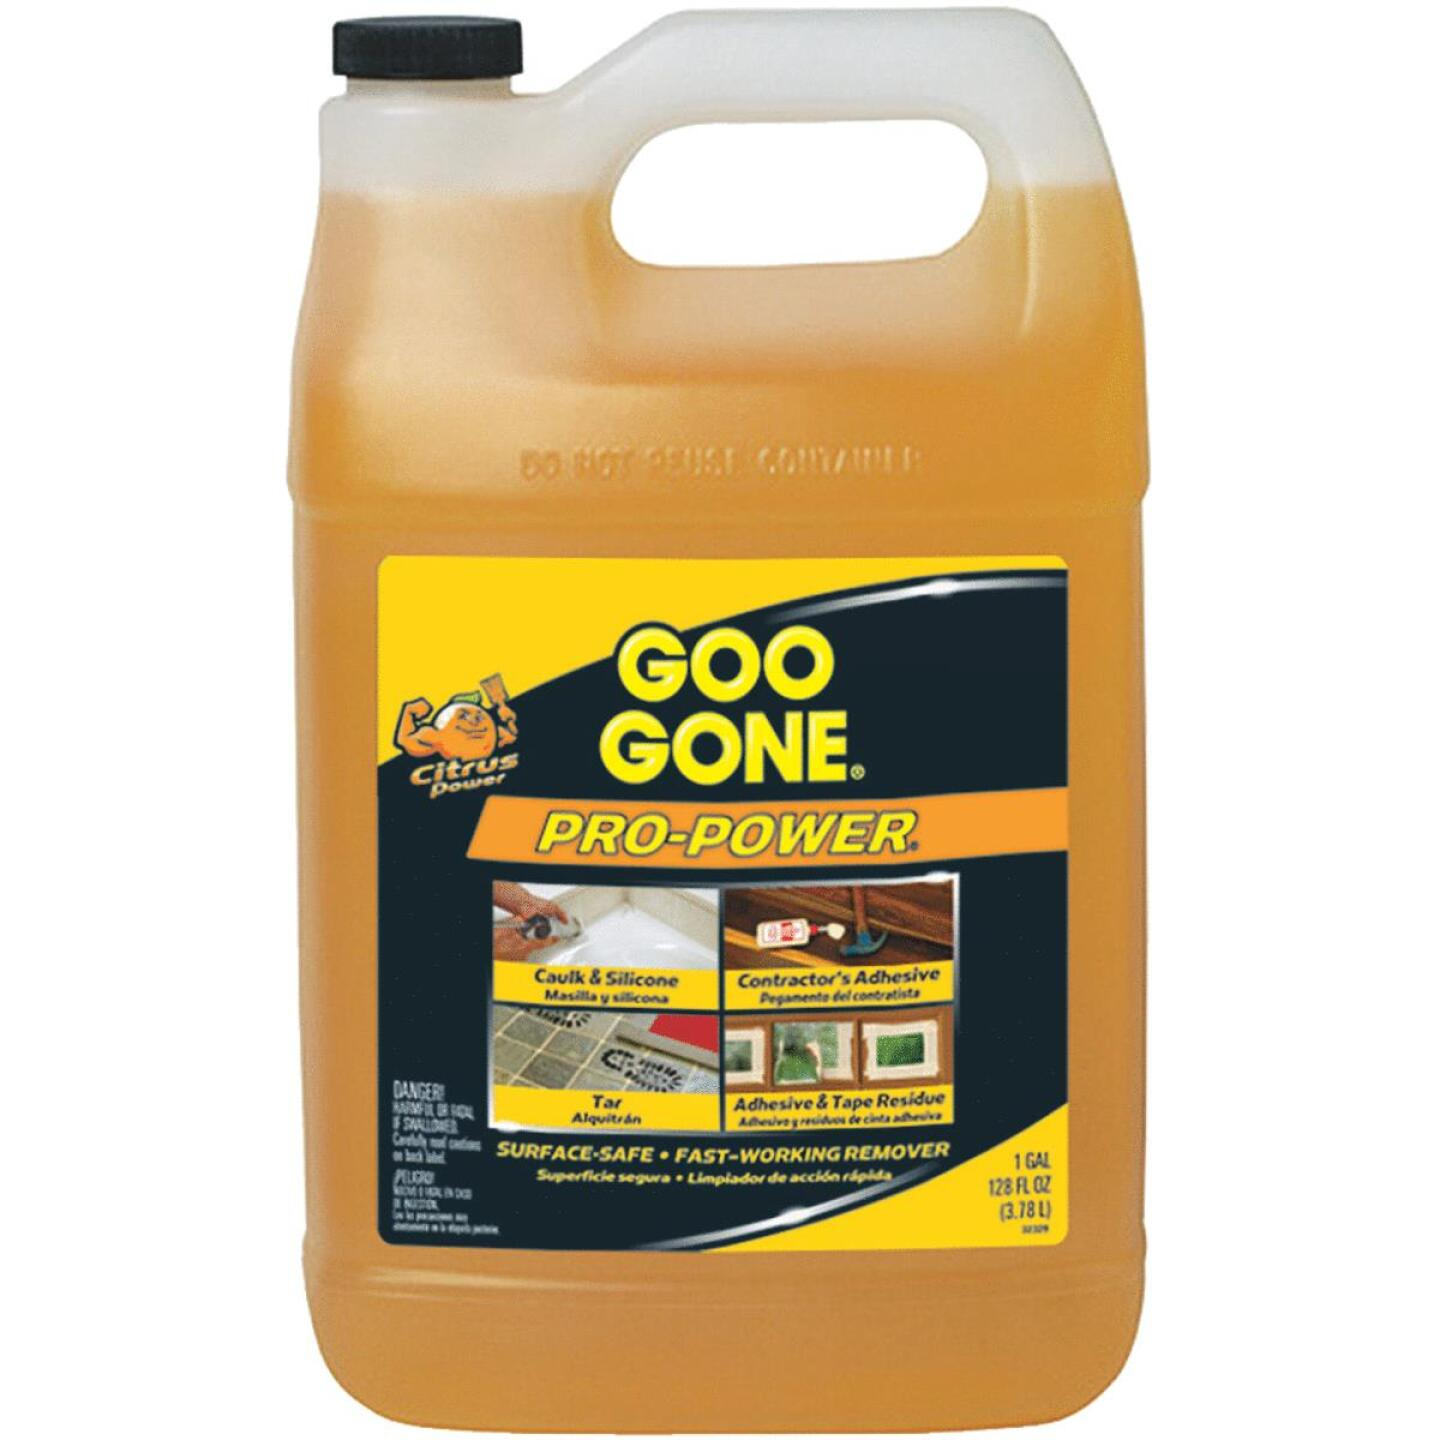 Goo Gone 1 Gal. Pro-Power Adhesive Remover Image 74